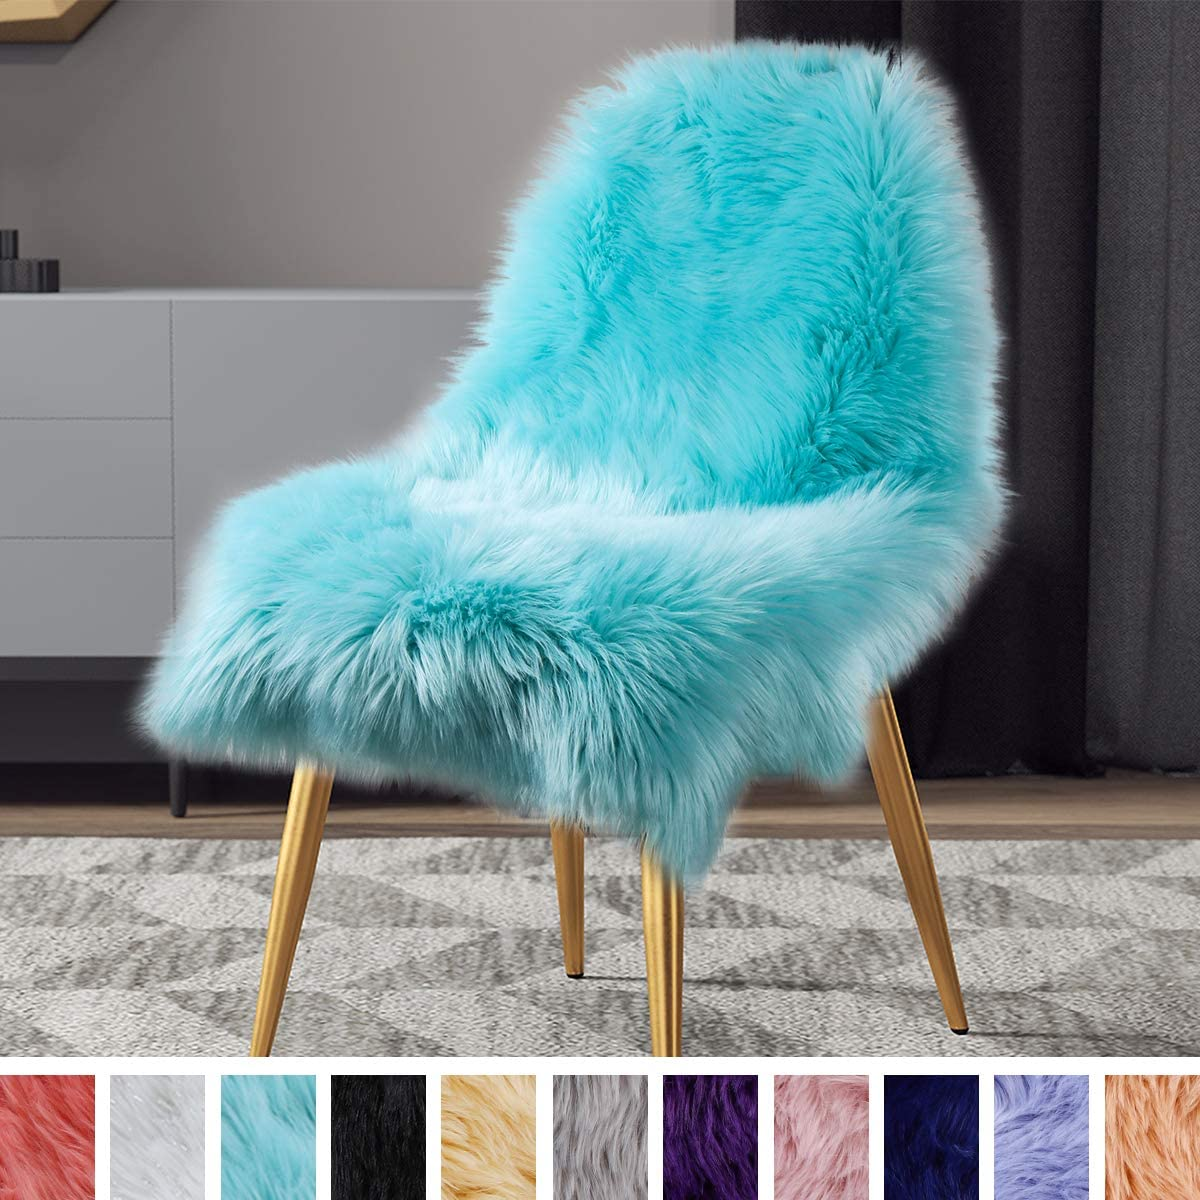 LOCHAS Deluxe Super Soft Fluffy Shaggy Home Decor Faux Sheepskin Rug for Bedroom Floor Sofa Chair, Chair Cover Seat Pad Couch Pad Area Carpet, 2ft x 3ft, Ivory White: Kitchen & Dining